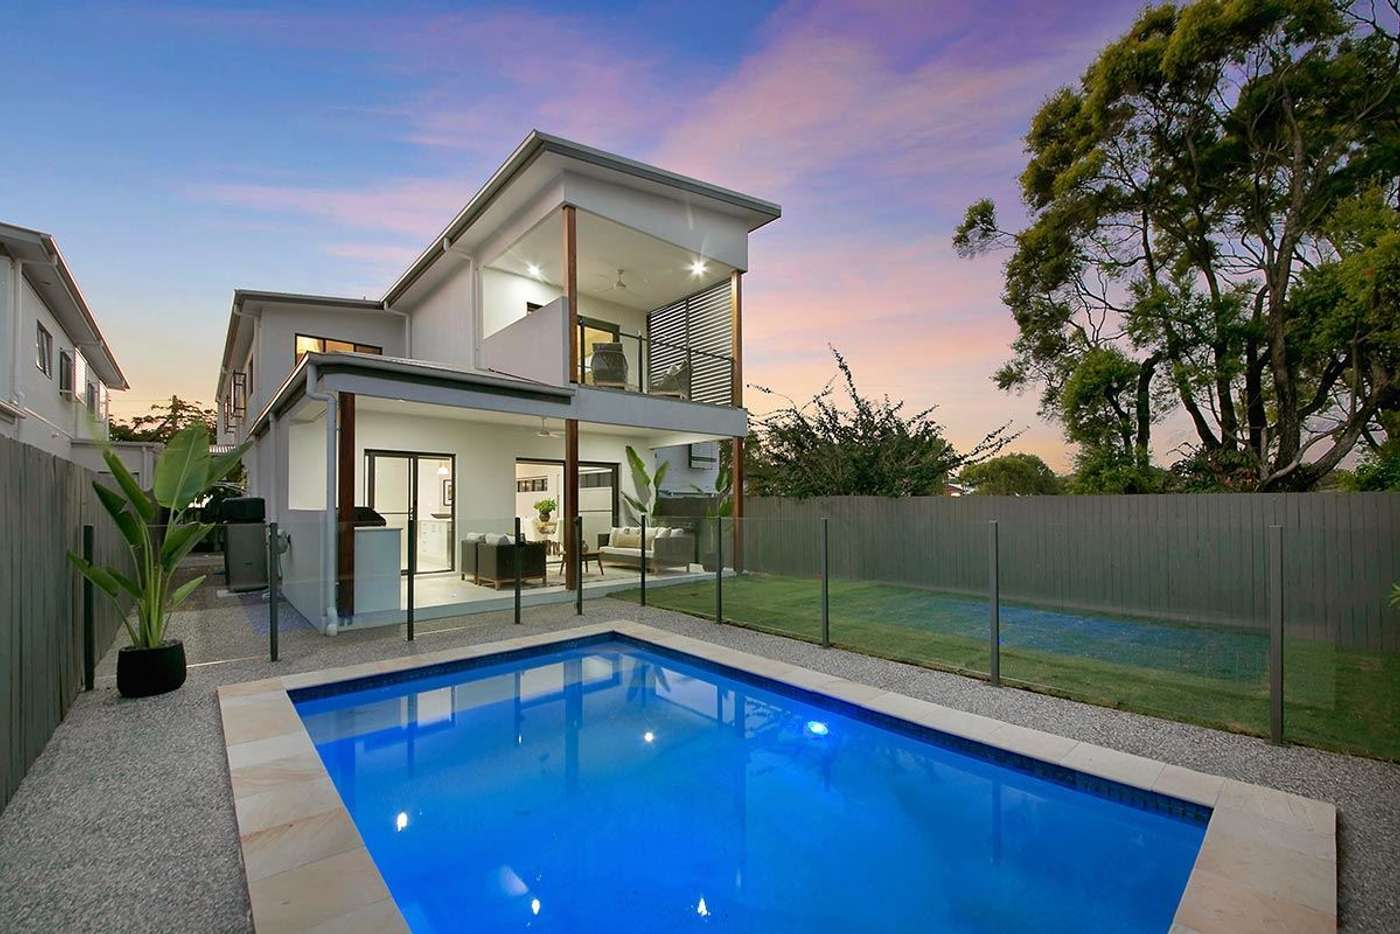 Main view of Homely house listing, 33 Ure Street, Hendra QLD 4011